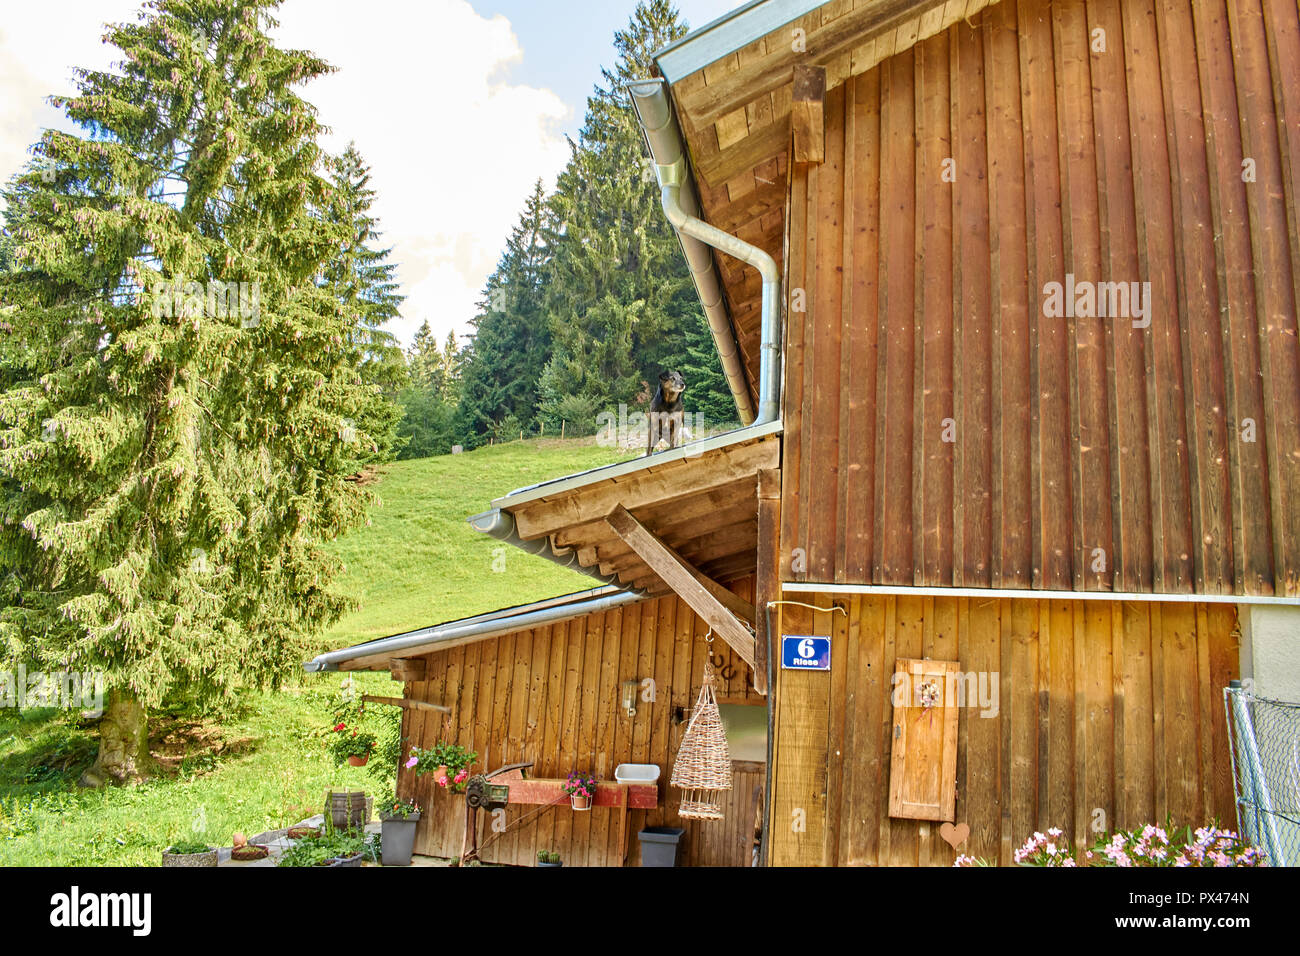 curious little dog on the roof of a woodhouse in the mountains - Stock Image